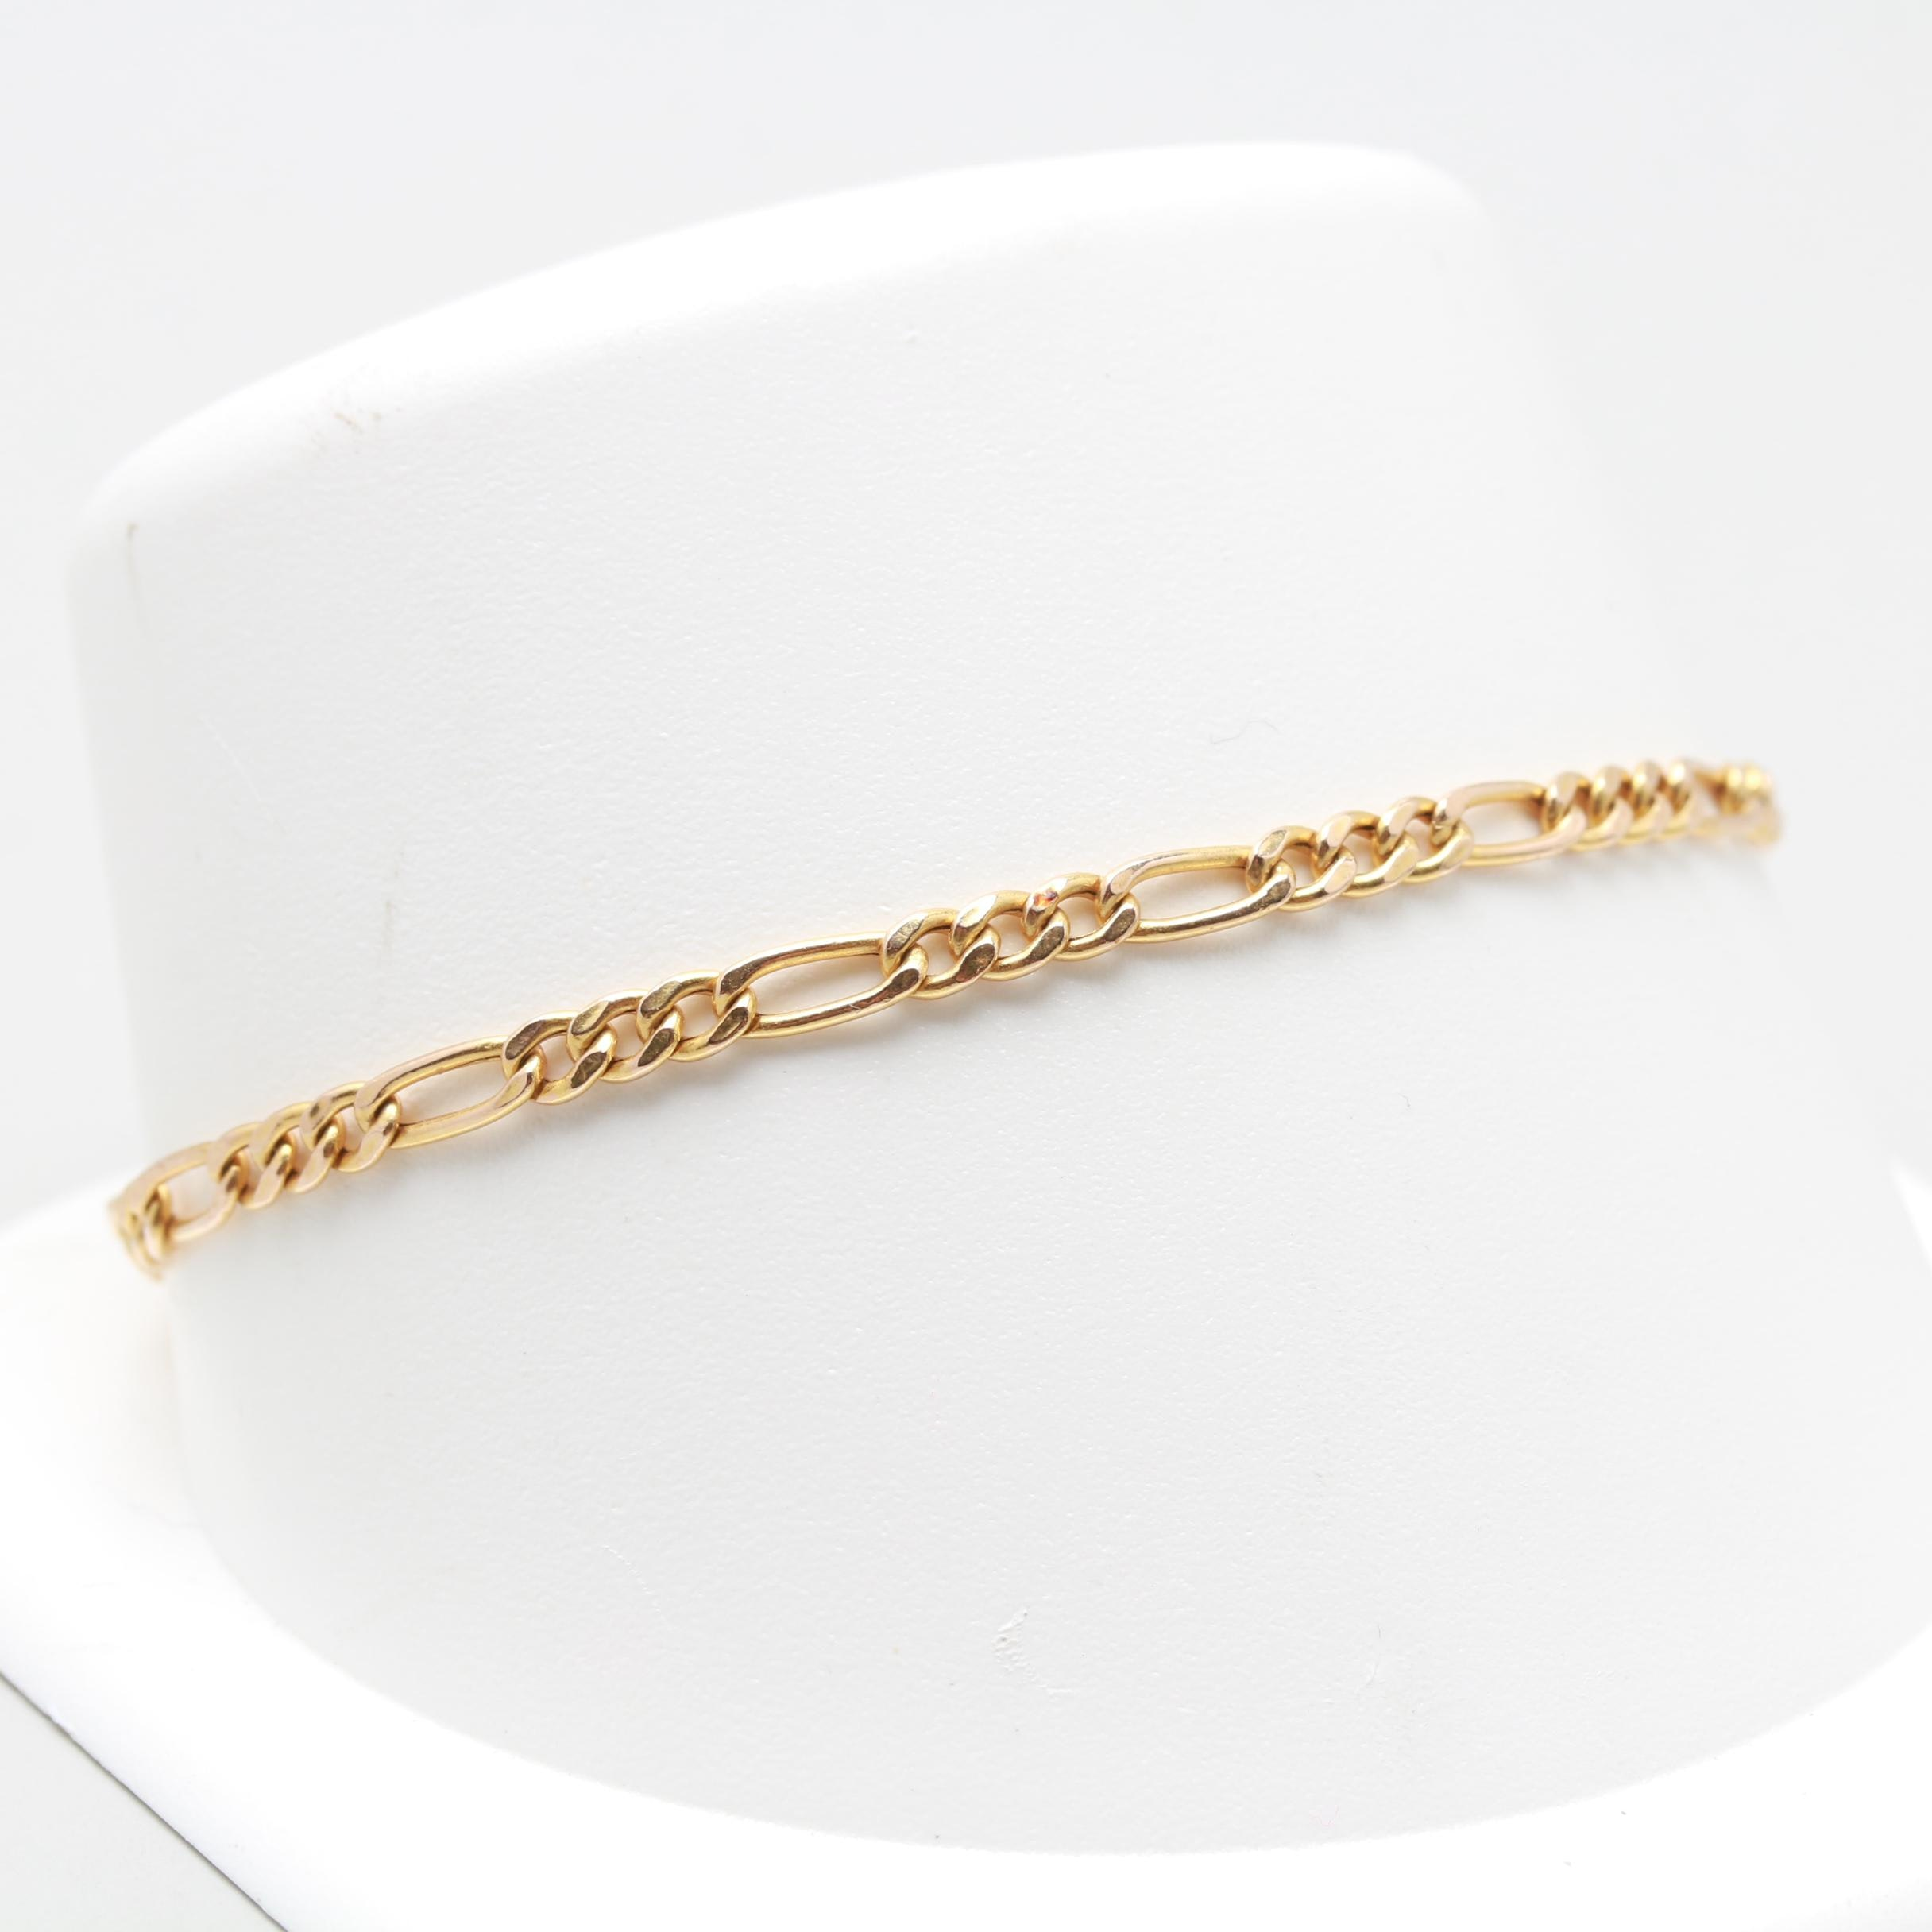 10K Yellow Gold Figaro Bracelet